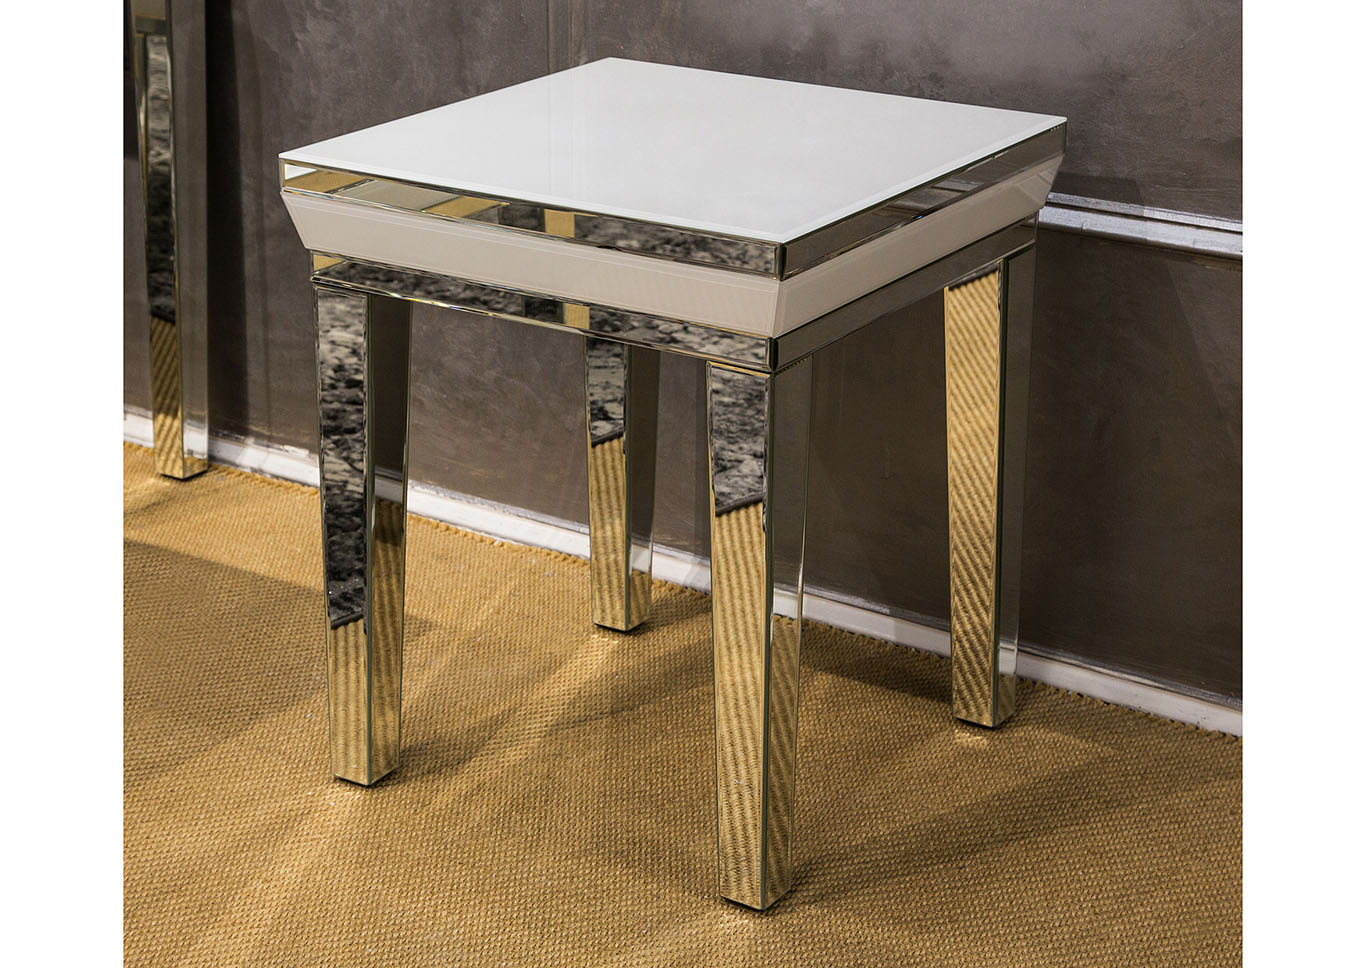 premier furniture gallery montreal square end table mntrl tables aico amish direct leather vancouver antique mirror coffee large modern glass kids rustic pallet foldable ashley